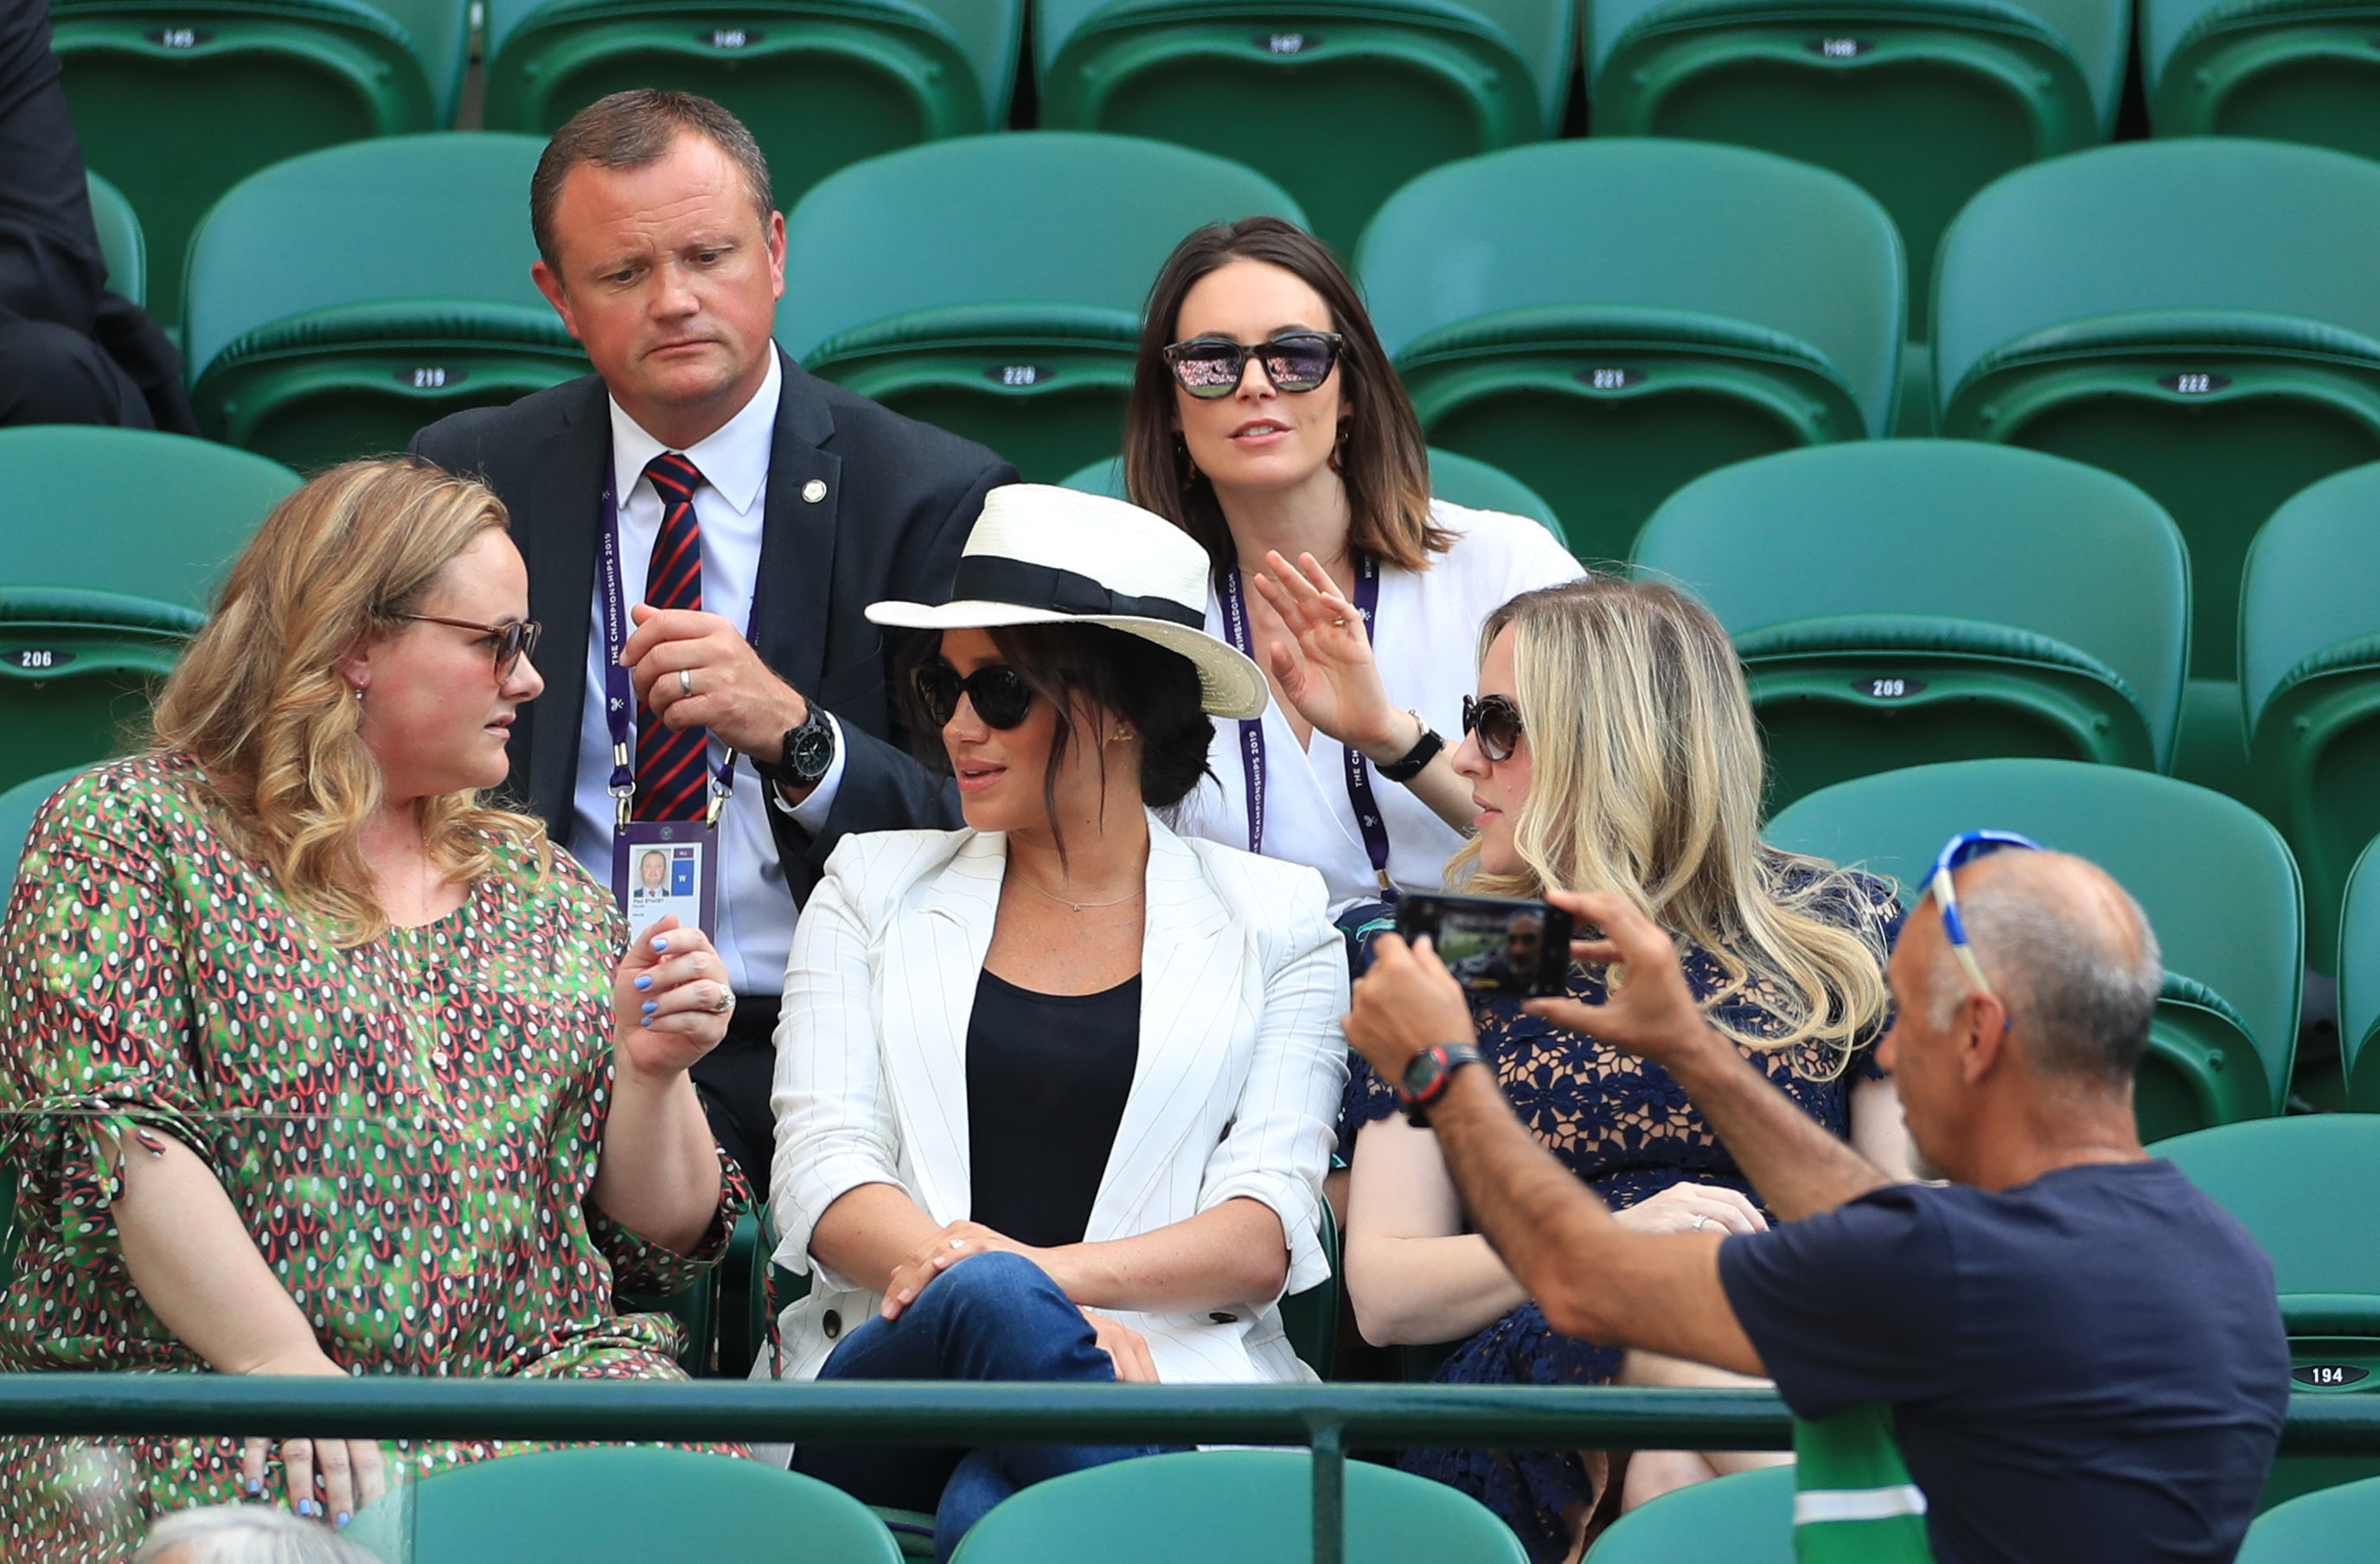 Kate Middleton and Meghan Markle together for Wimbledon ladies final